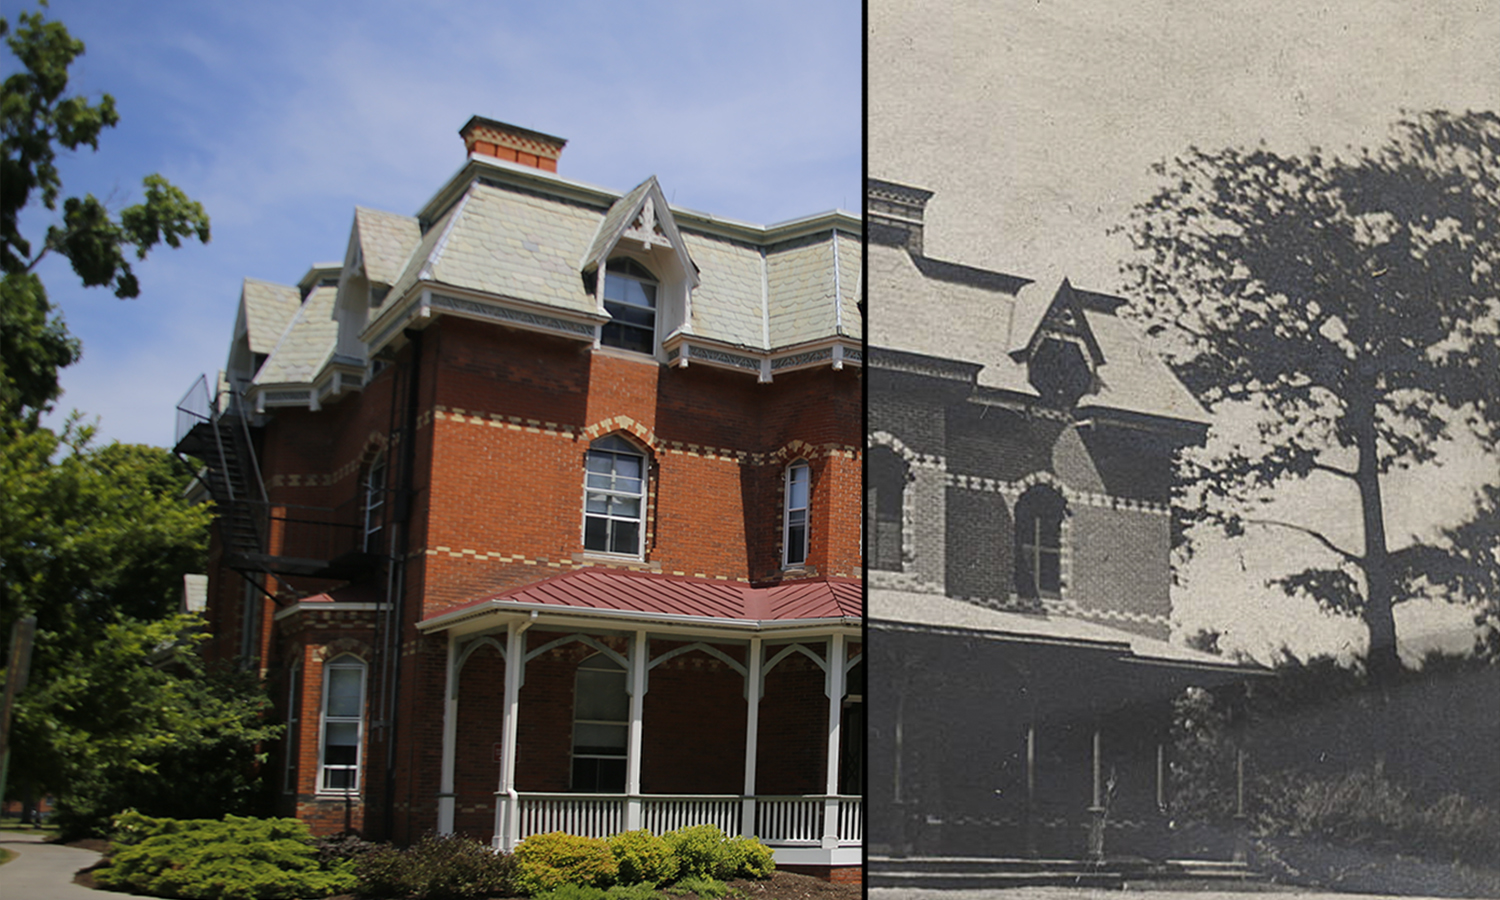 The first residence hall for William Smith Colleges, Blackwell House was constructed in 1863 and is still an all female residence hall to this day.